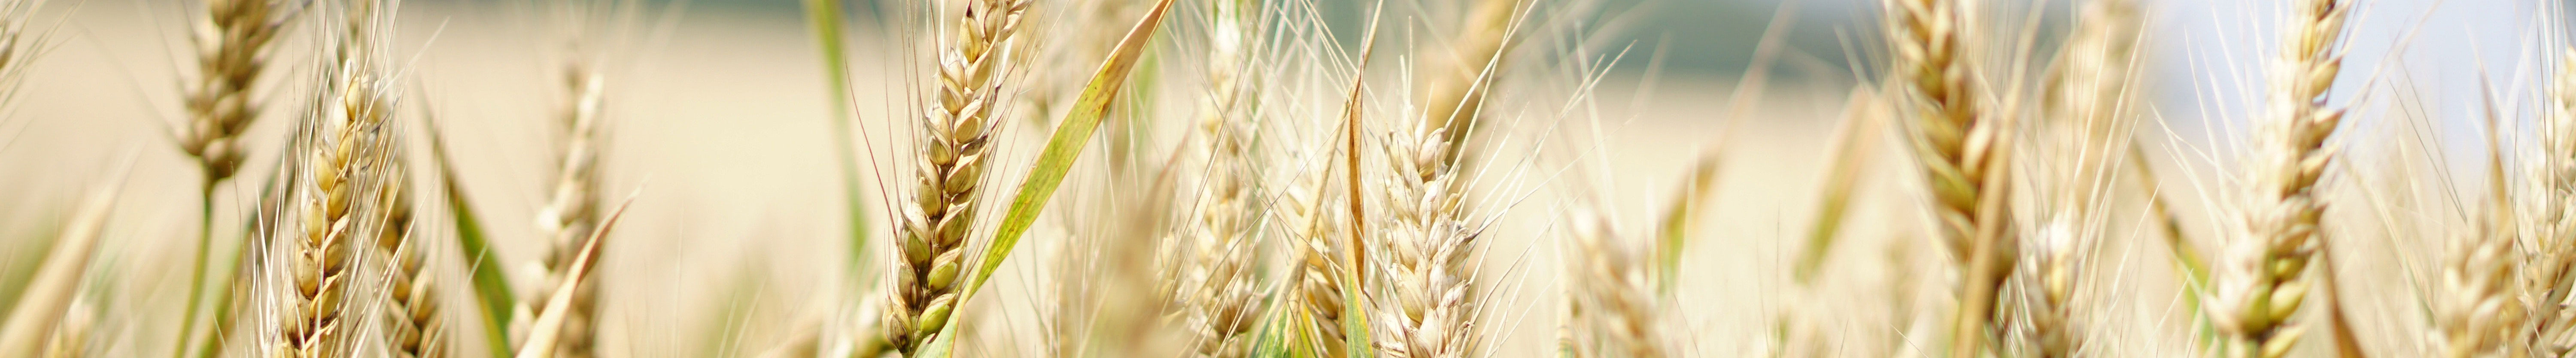 Zoomed view of wheat.